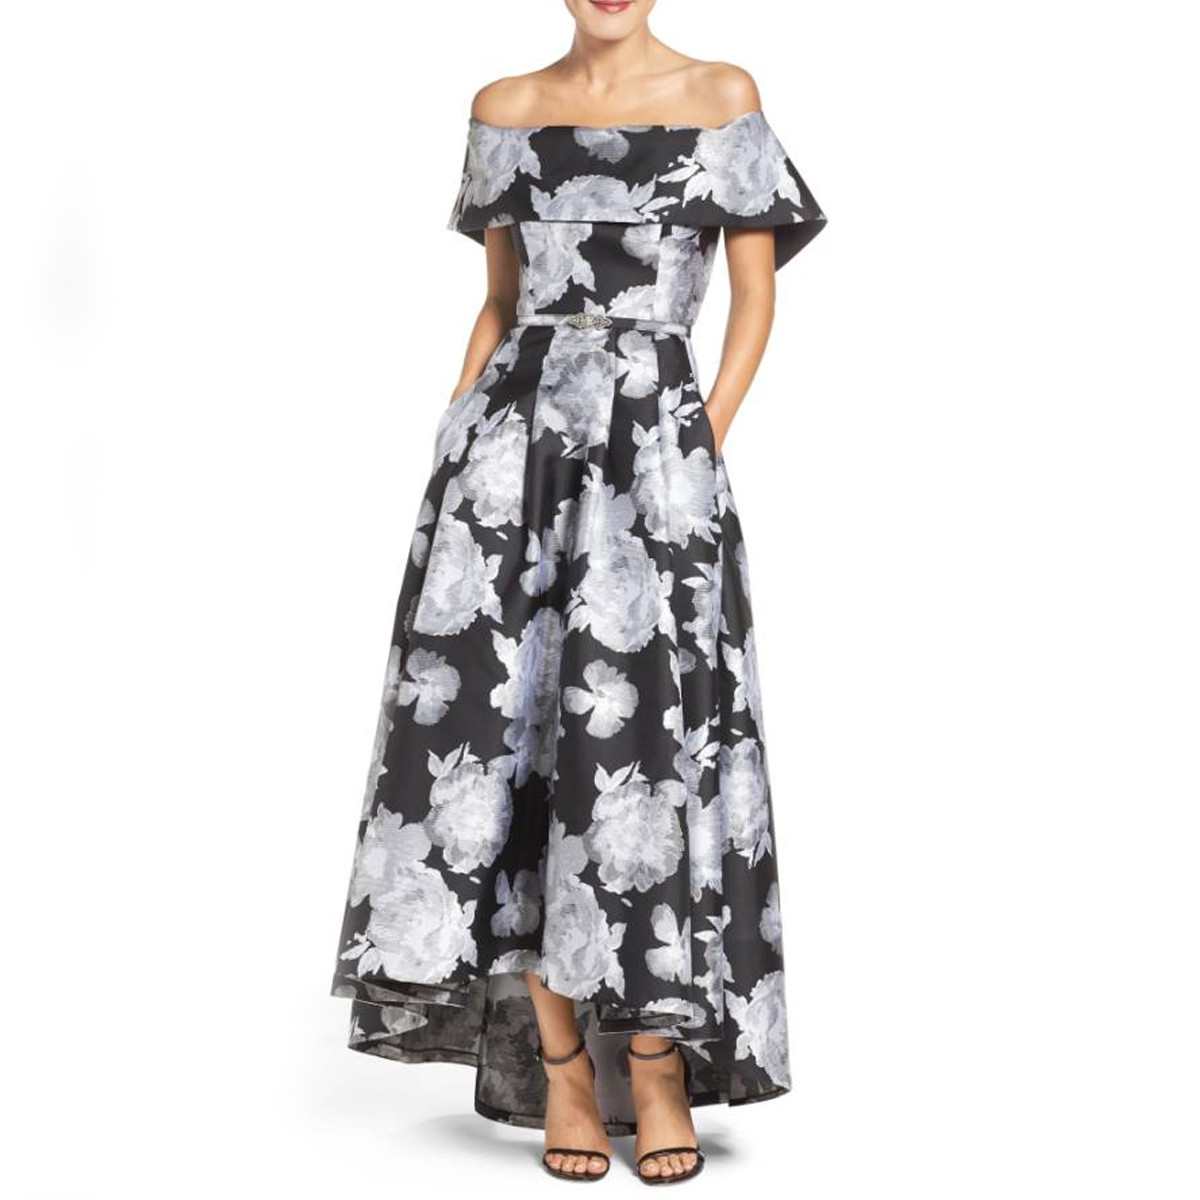 Woman wearing a floral off-the-shoulder dress photo